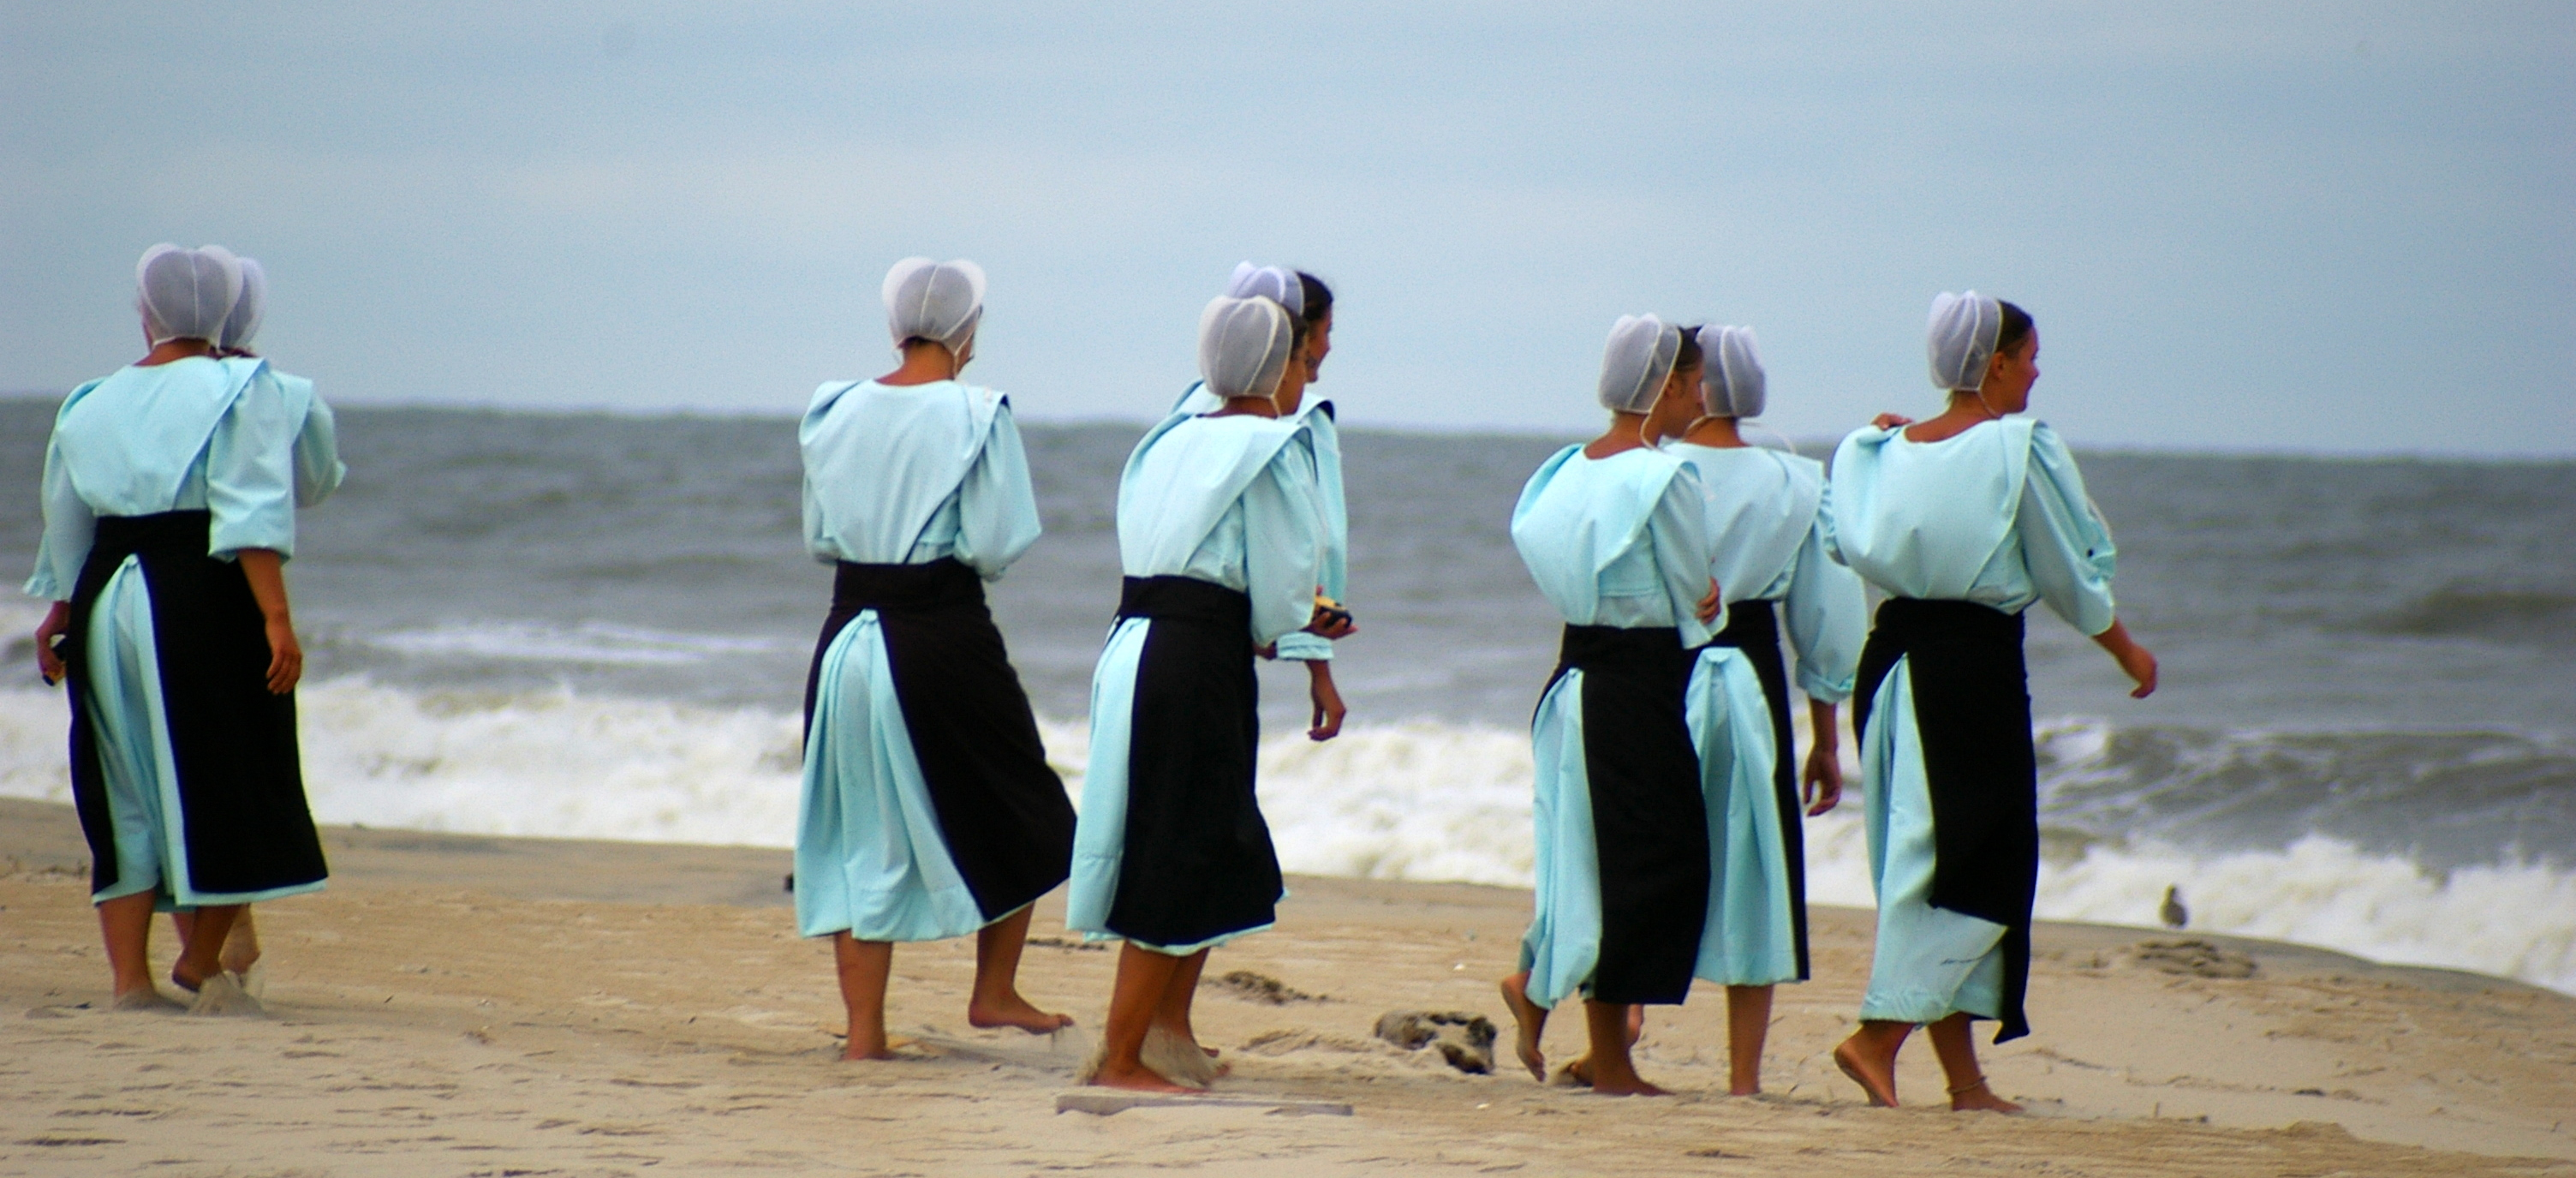 http://upload.wikimedia.org/wikipedia/commons/3/38/Femmes-Amish.jpg